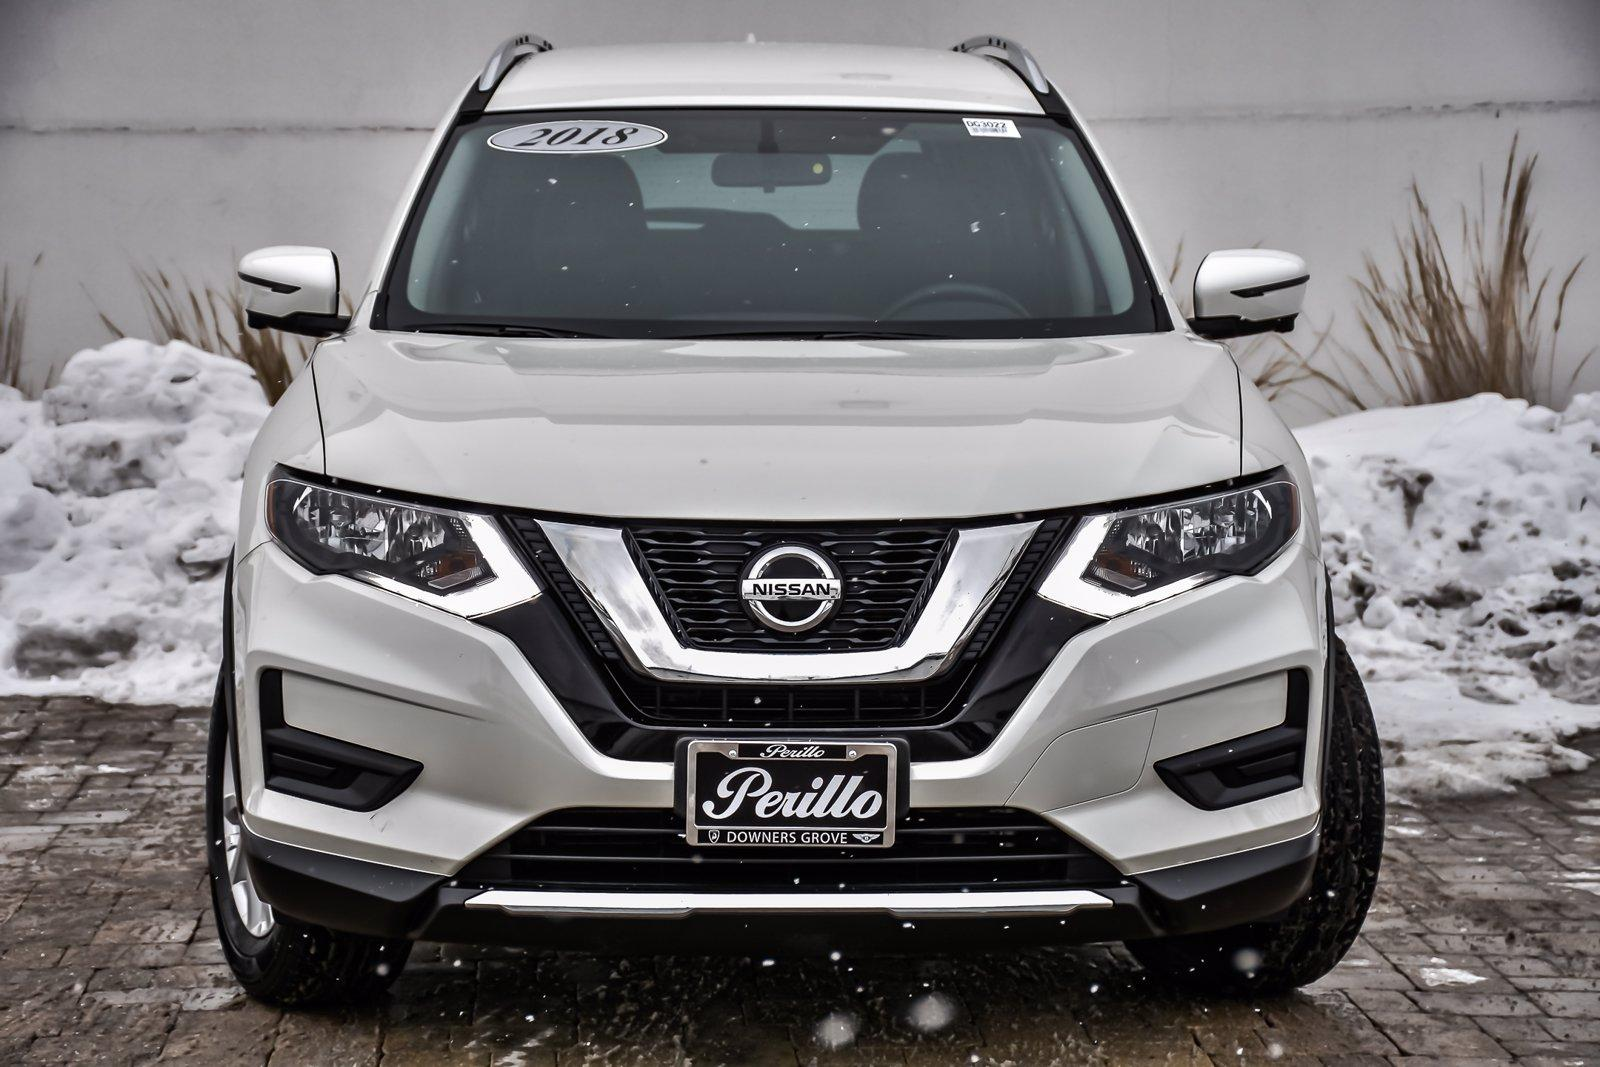 Used 2018 Nissan Rogue SV Premium With Navigation   Downers Grove, IL